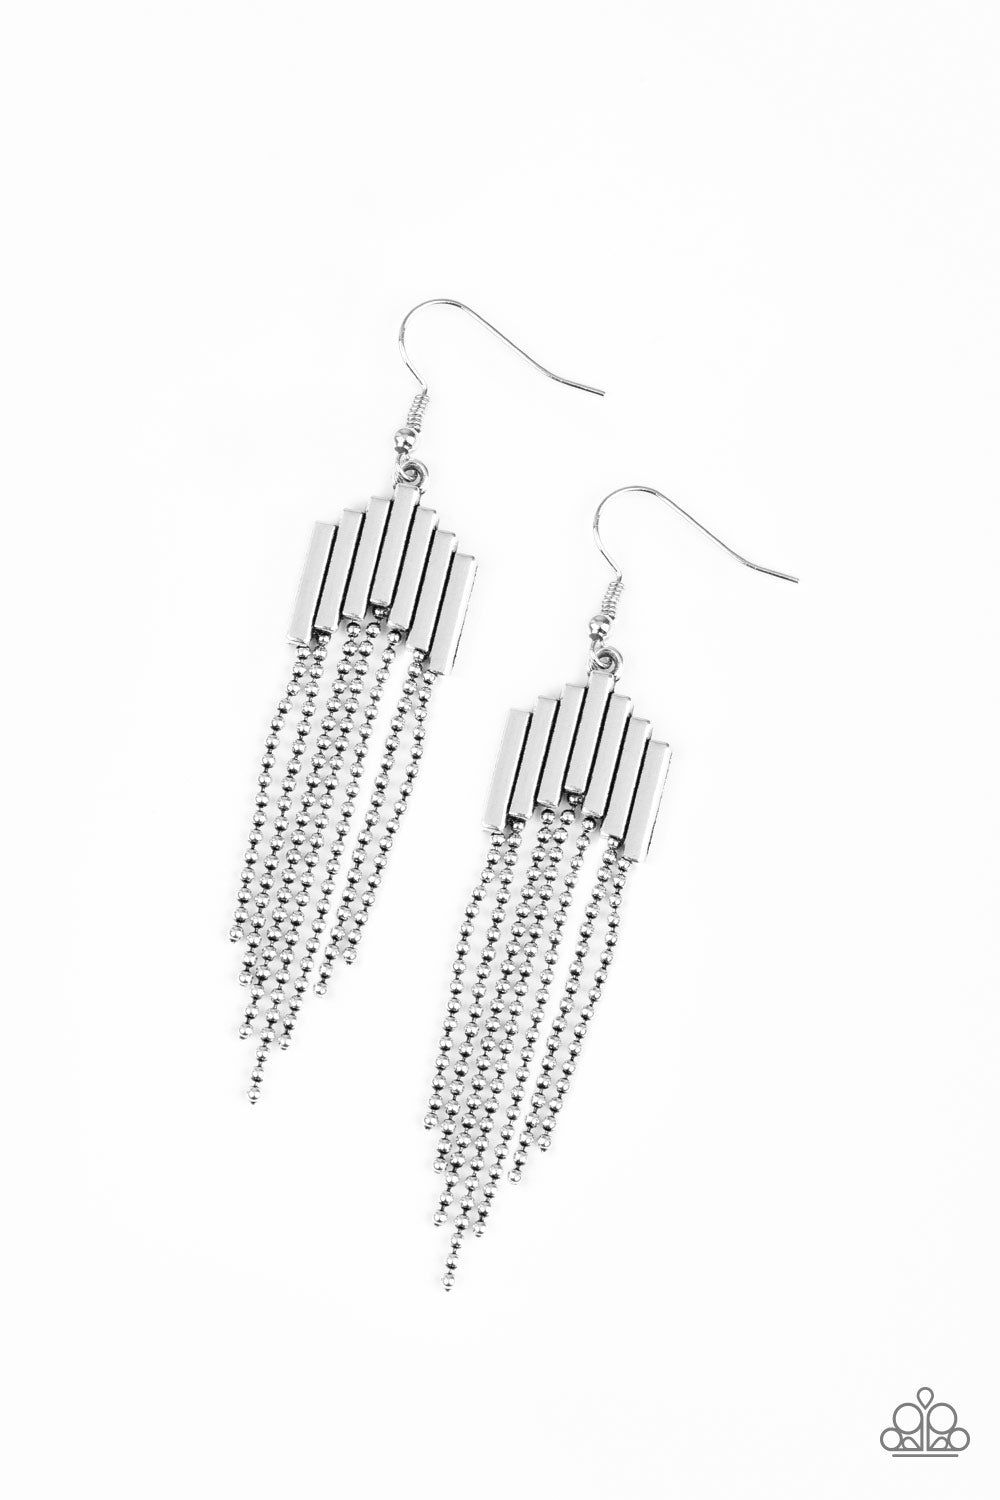 Paparazzi Accessories - Radically Retro - Silver Earrings - JMJ Jewelry Collection